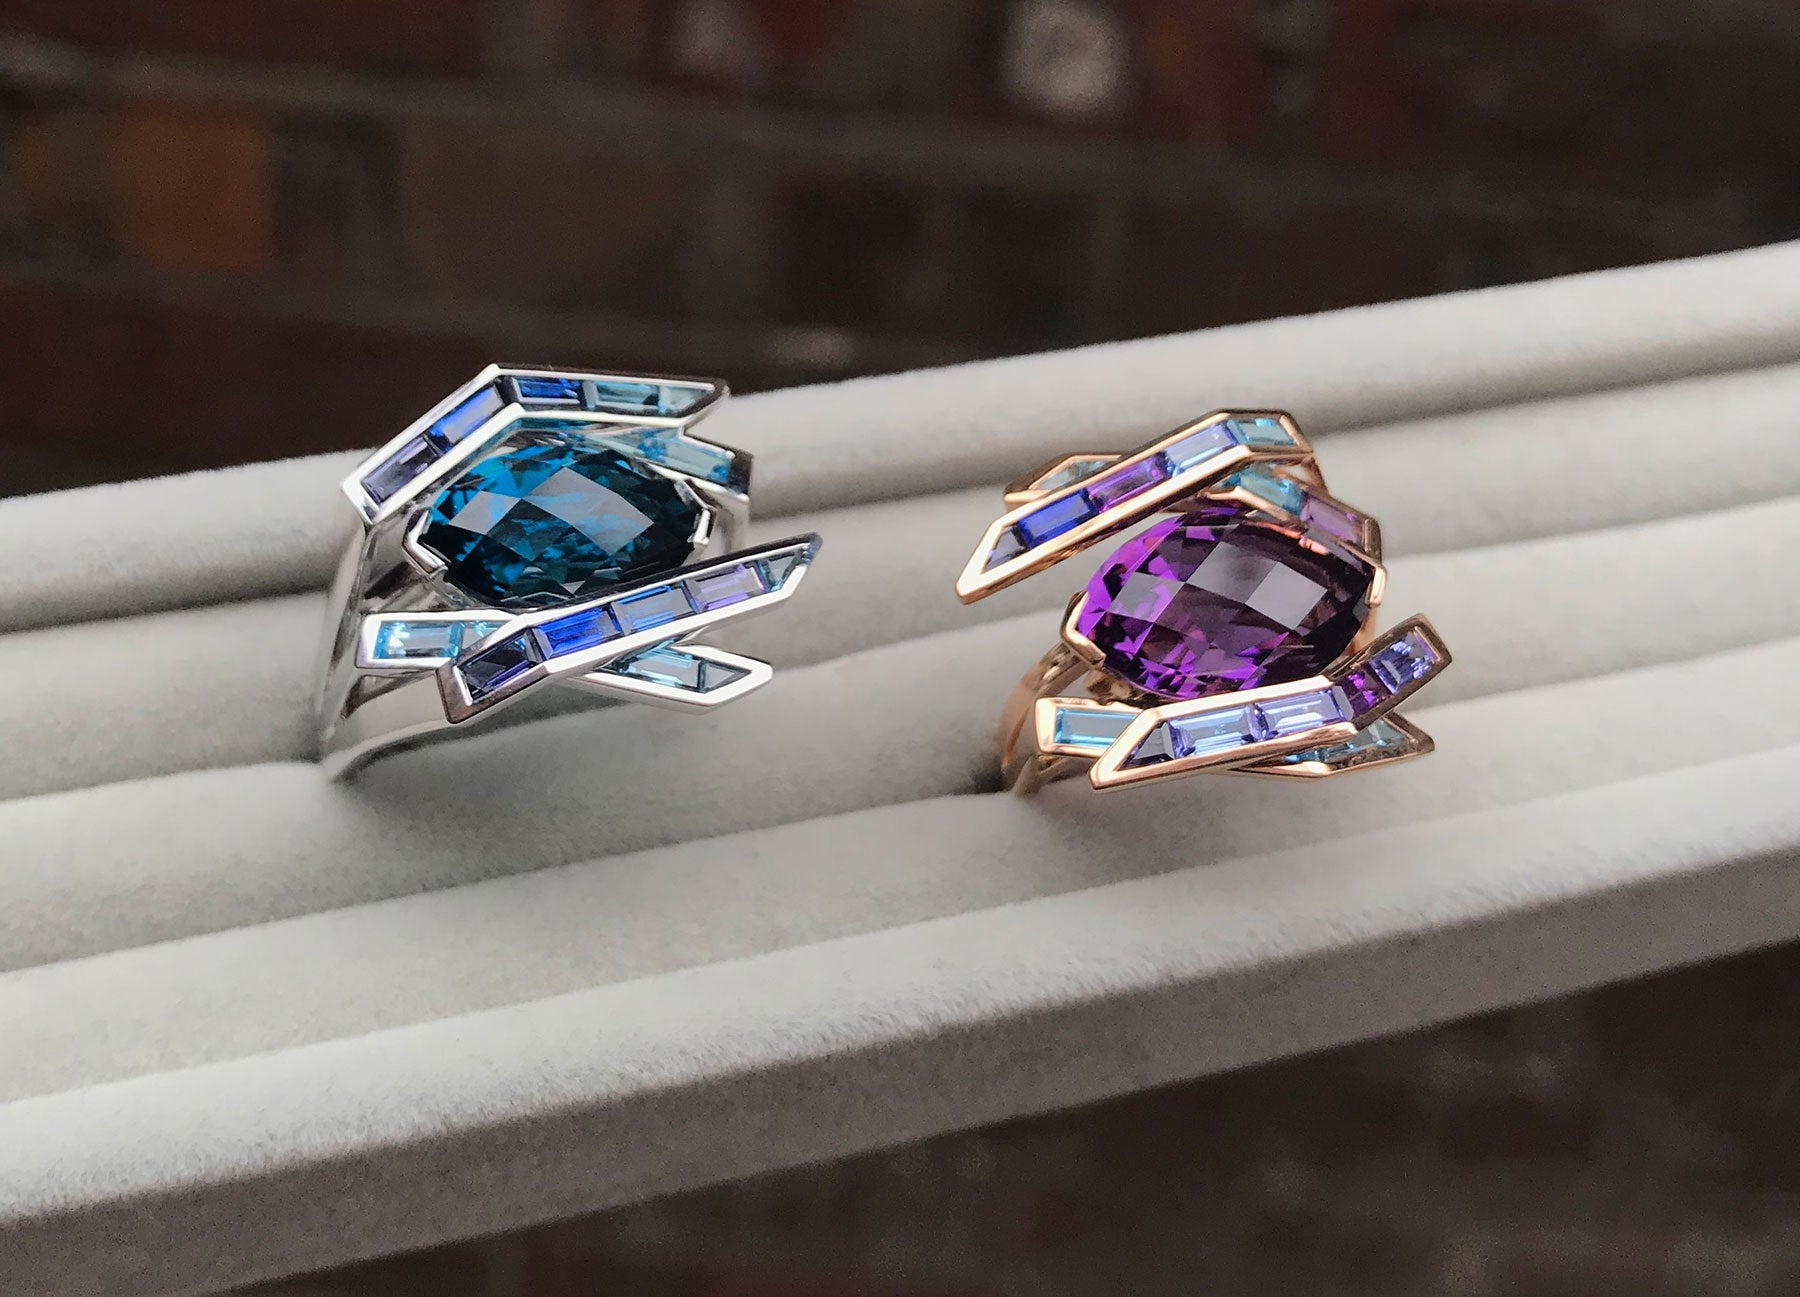 Electric Night Amethyst and Blue Topaz cocktail rings by Tomasz Donocik side by side